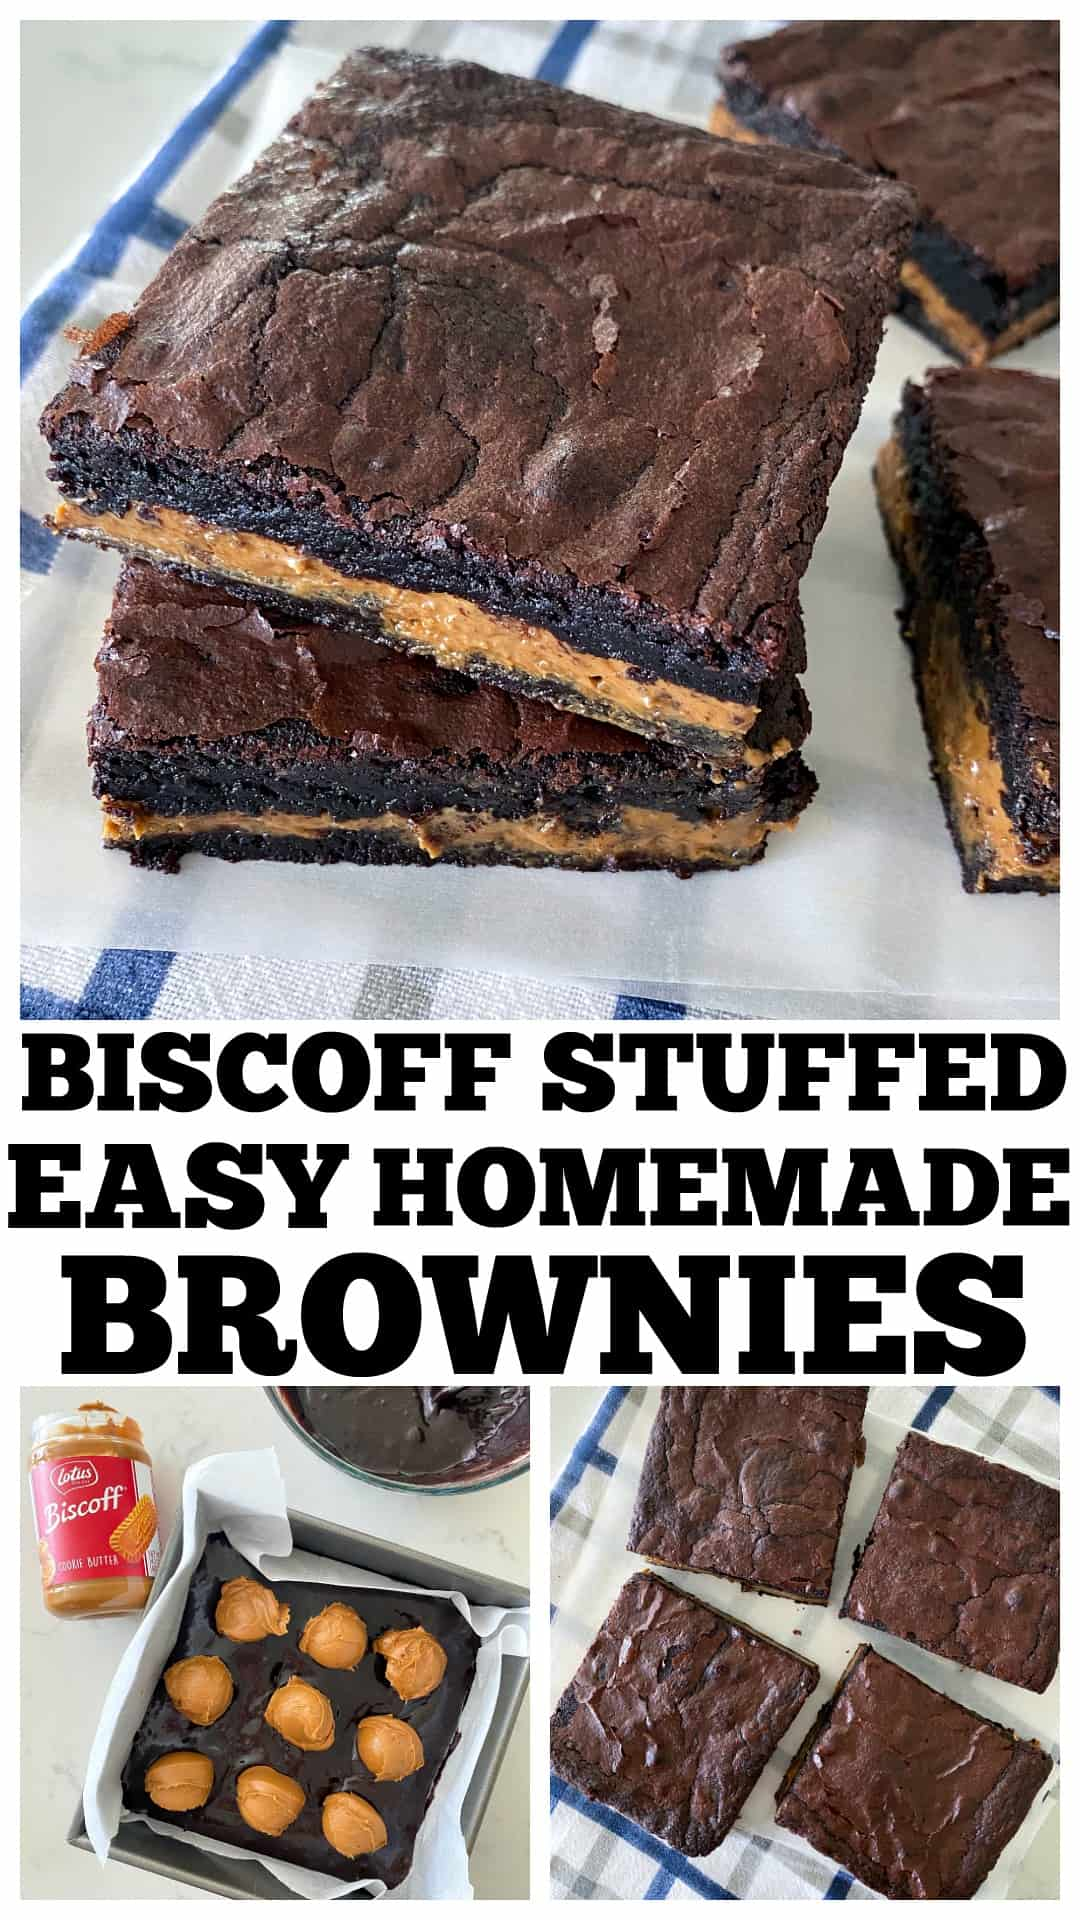 photo collage of easy homemade brownies